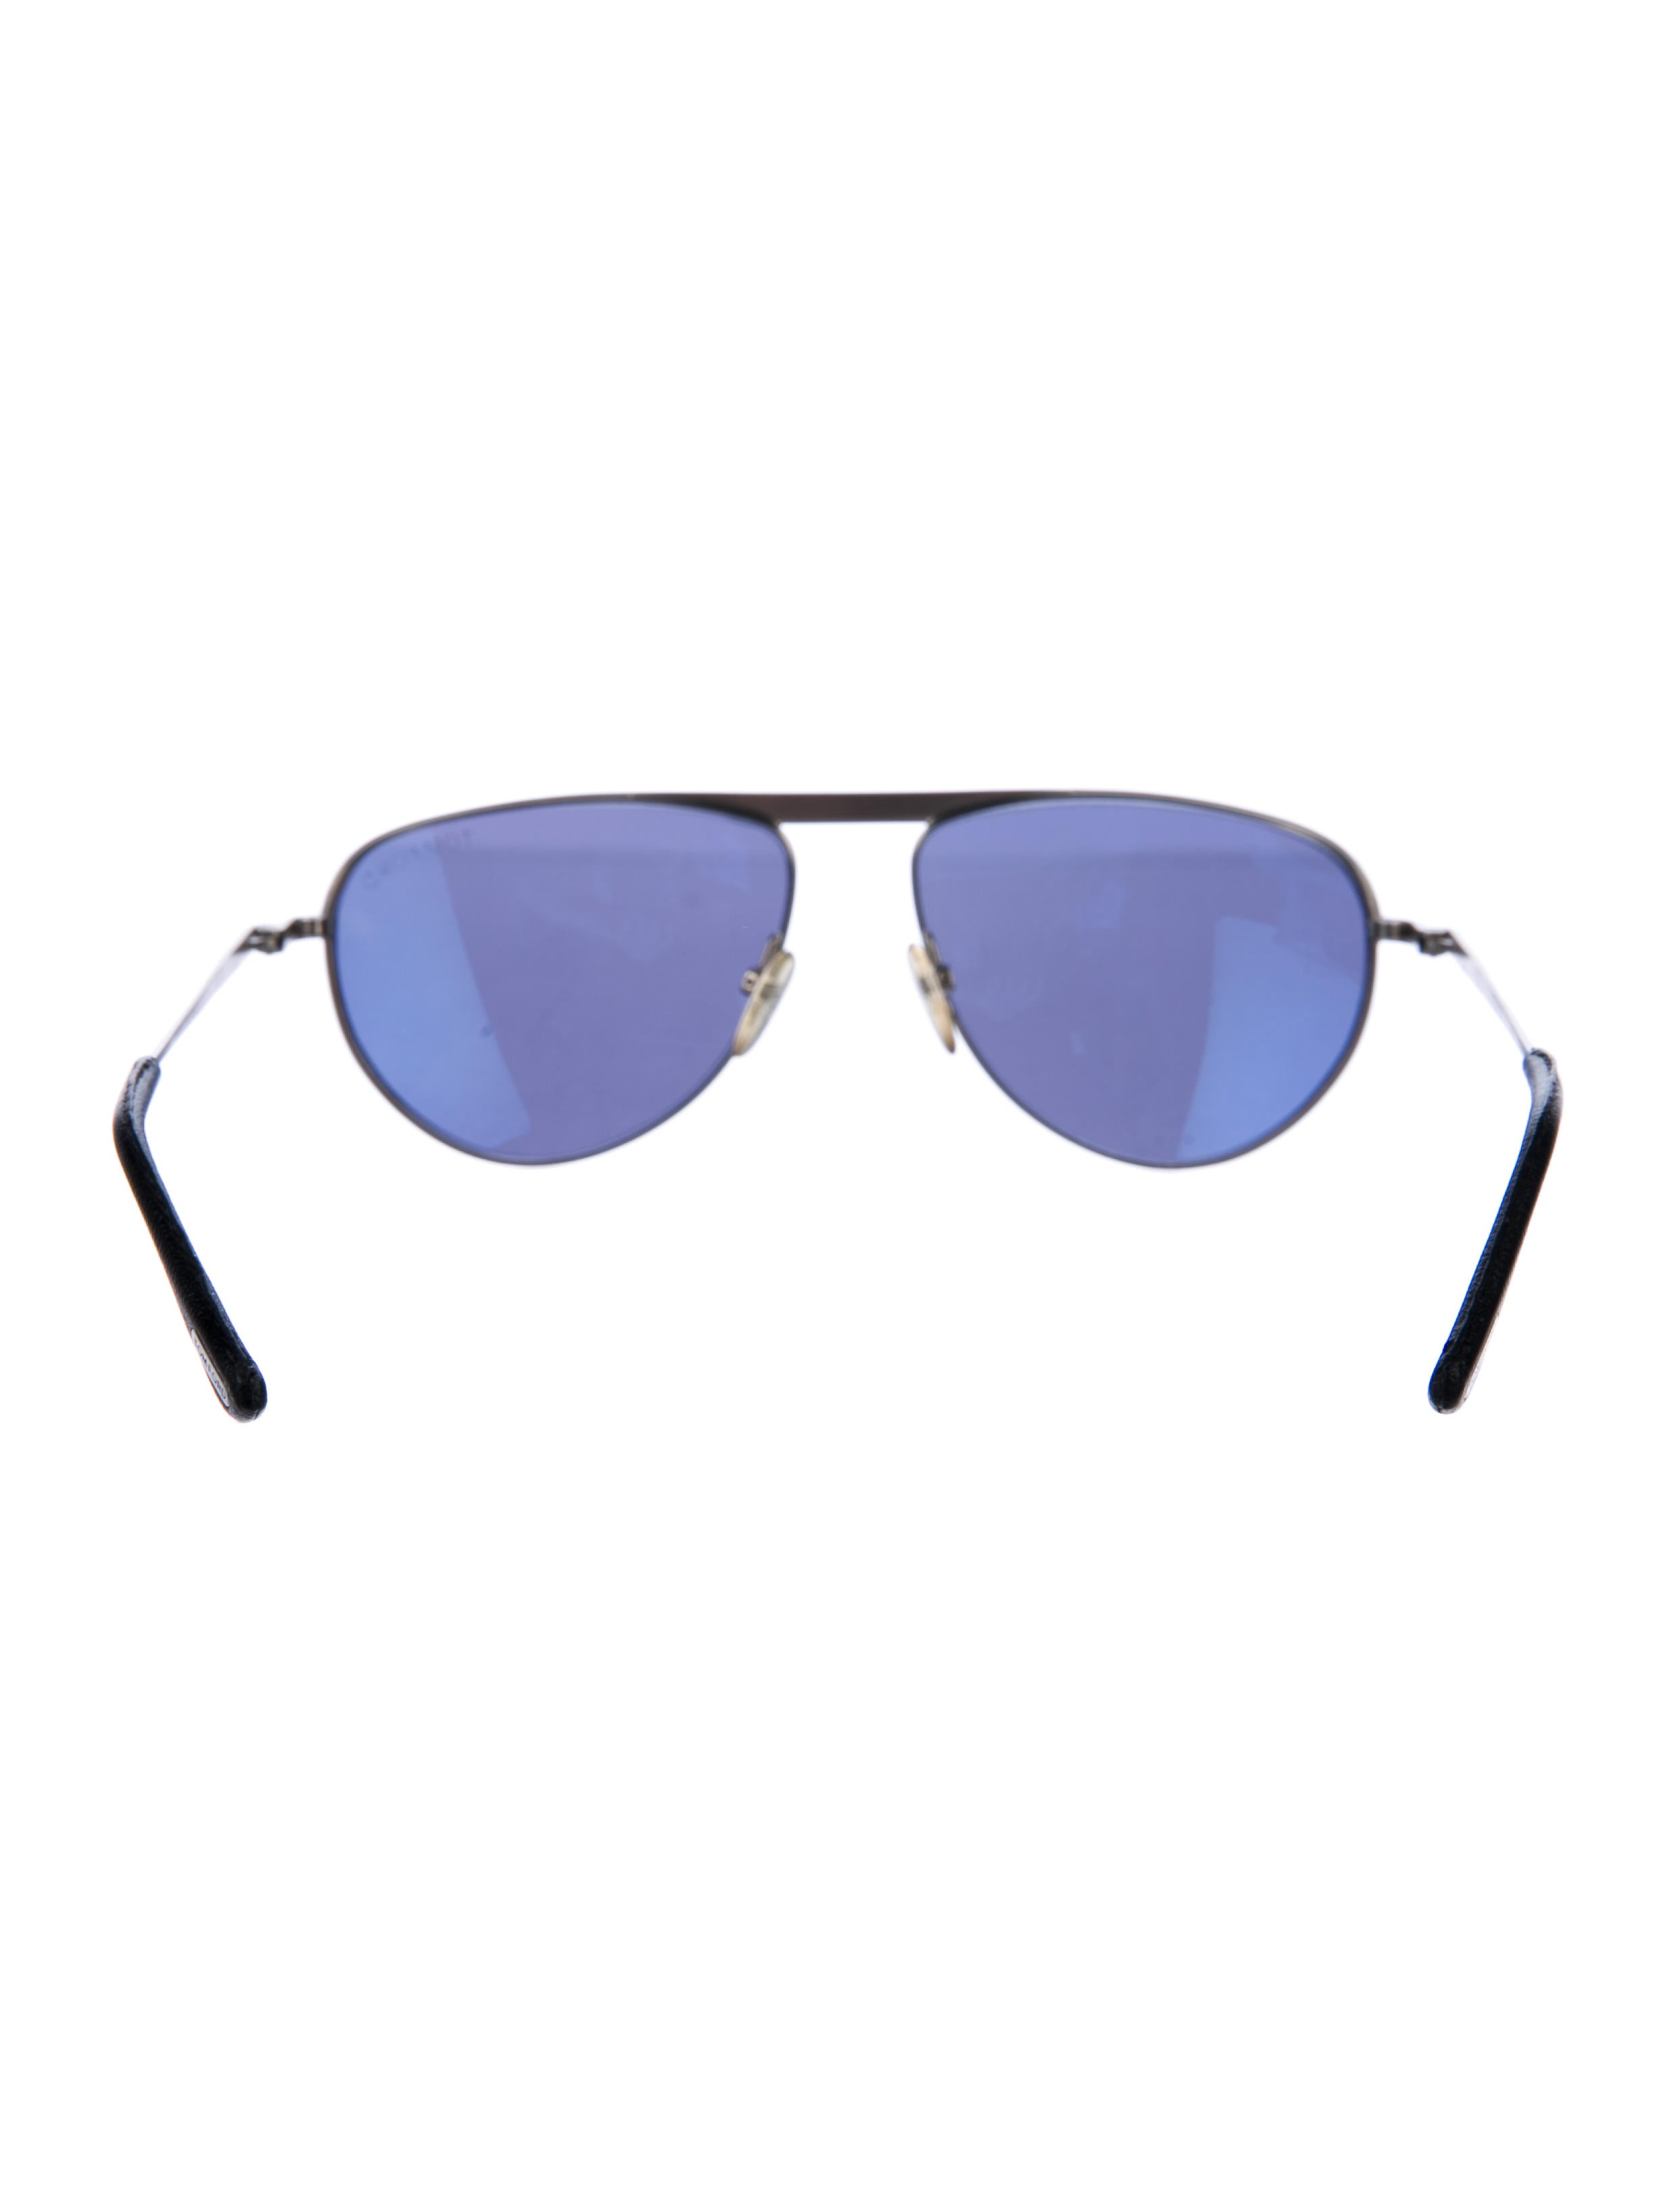 4e1ff36442d2 James Bond Sunglasses Quantum